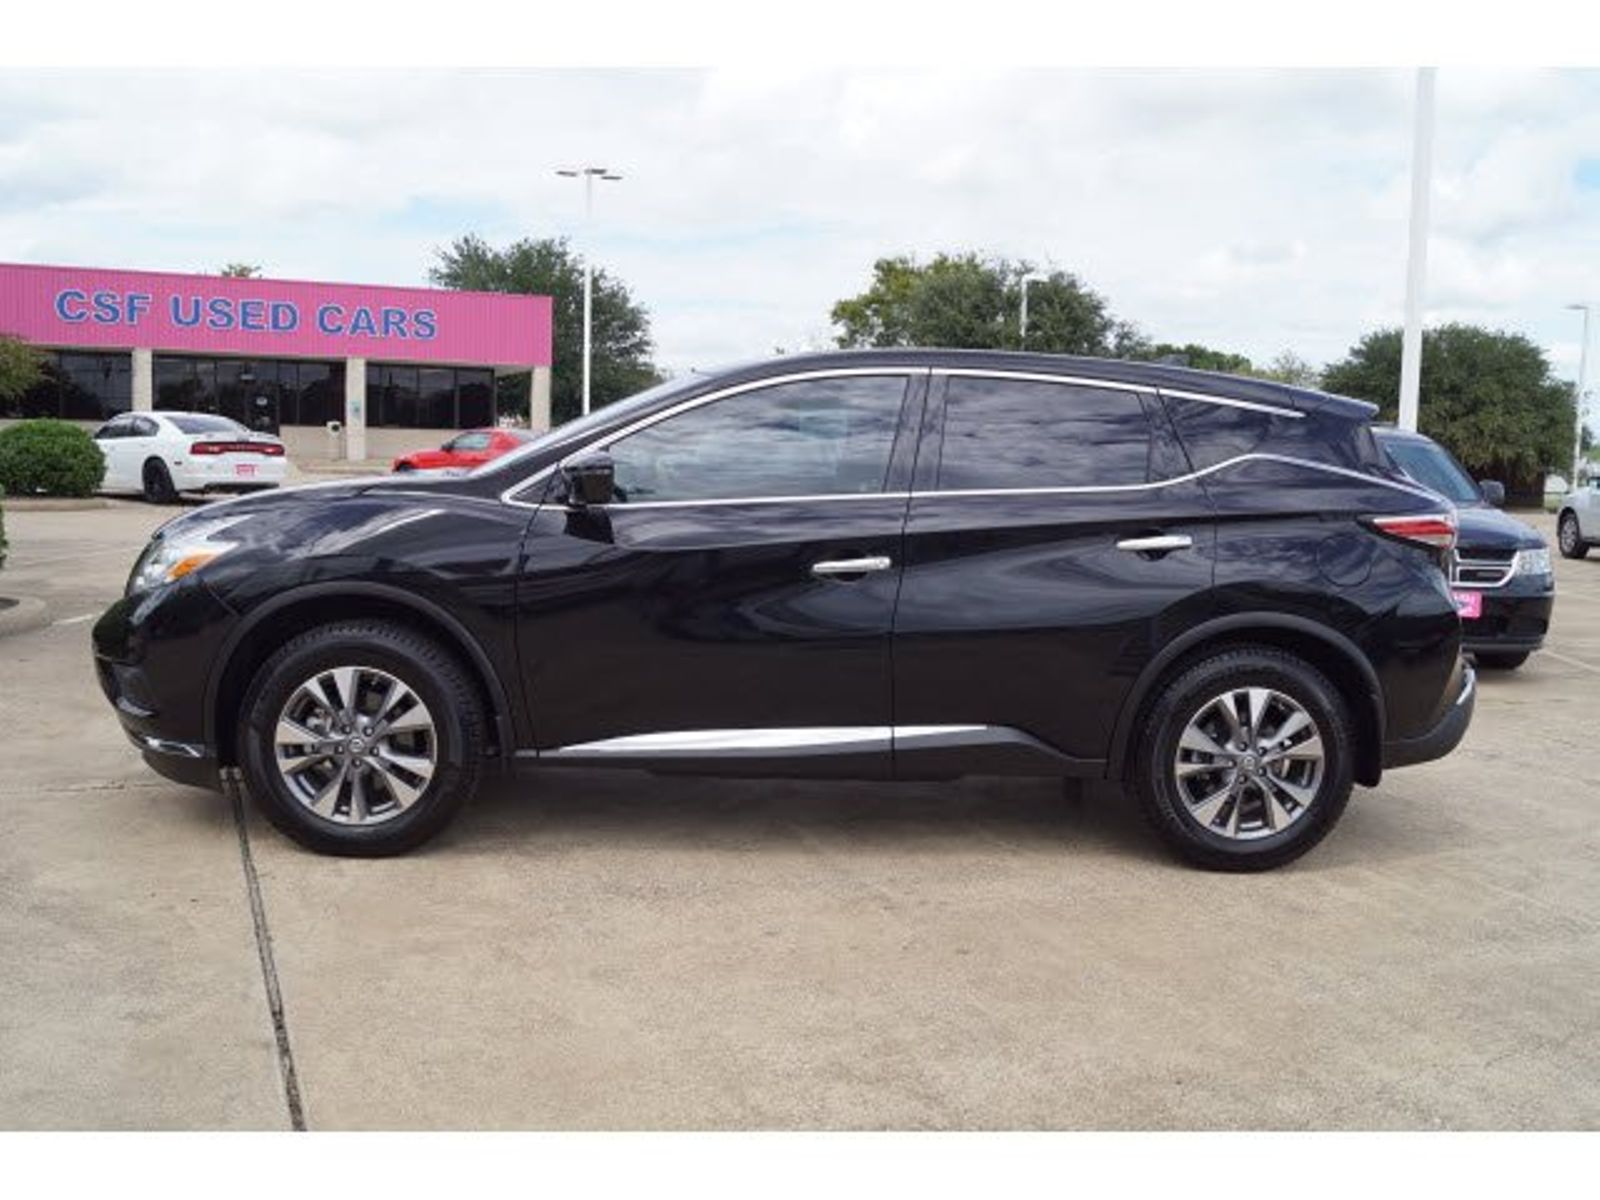 used estate parkers nissan murano review nmgb